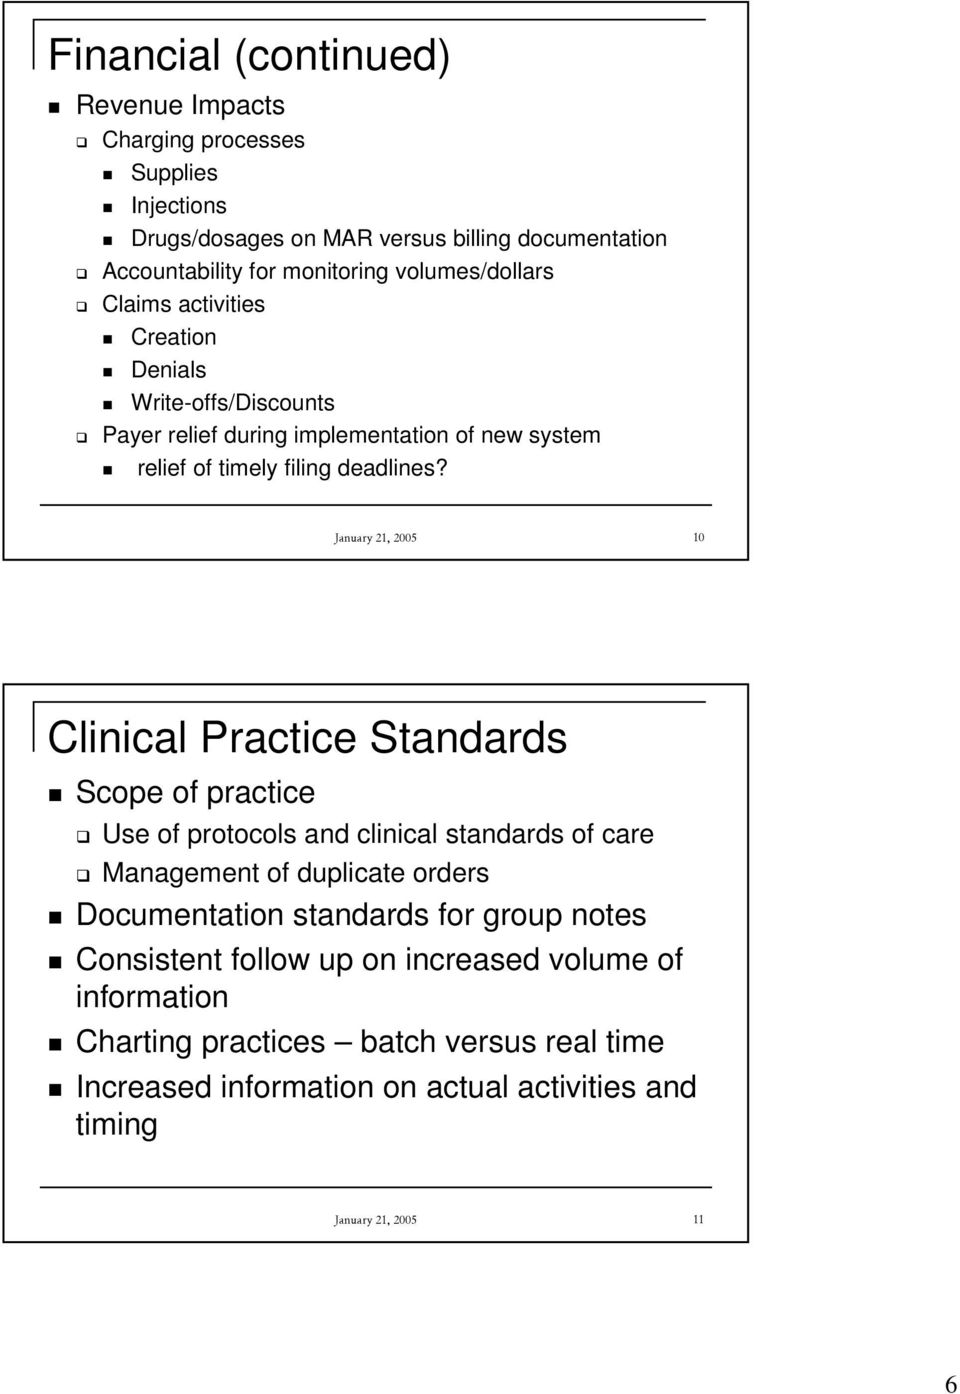 January 21, 2005 10 Clinical Practice Standards Scope of practice Use of protocols and clinical standards of care Management of duplicate orders Documentation